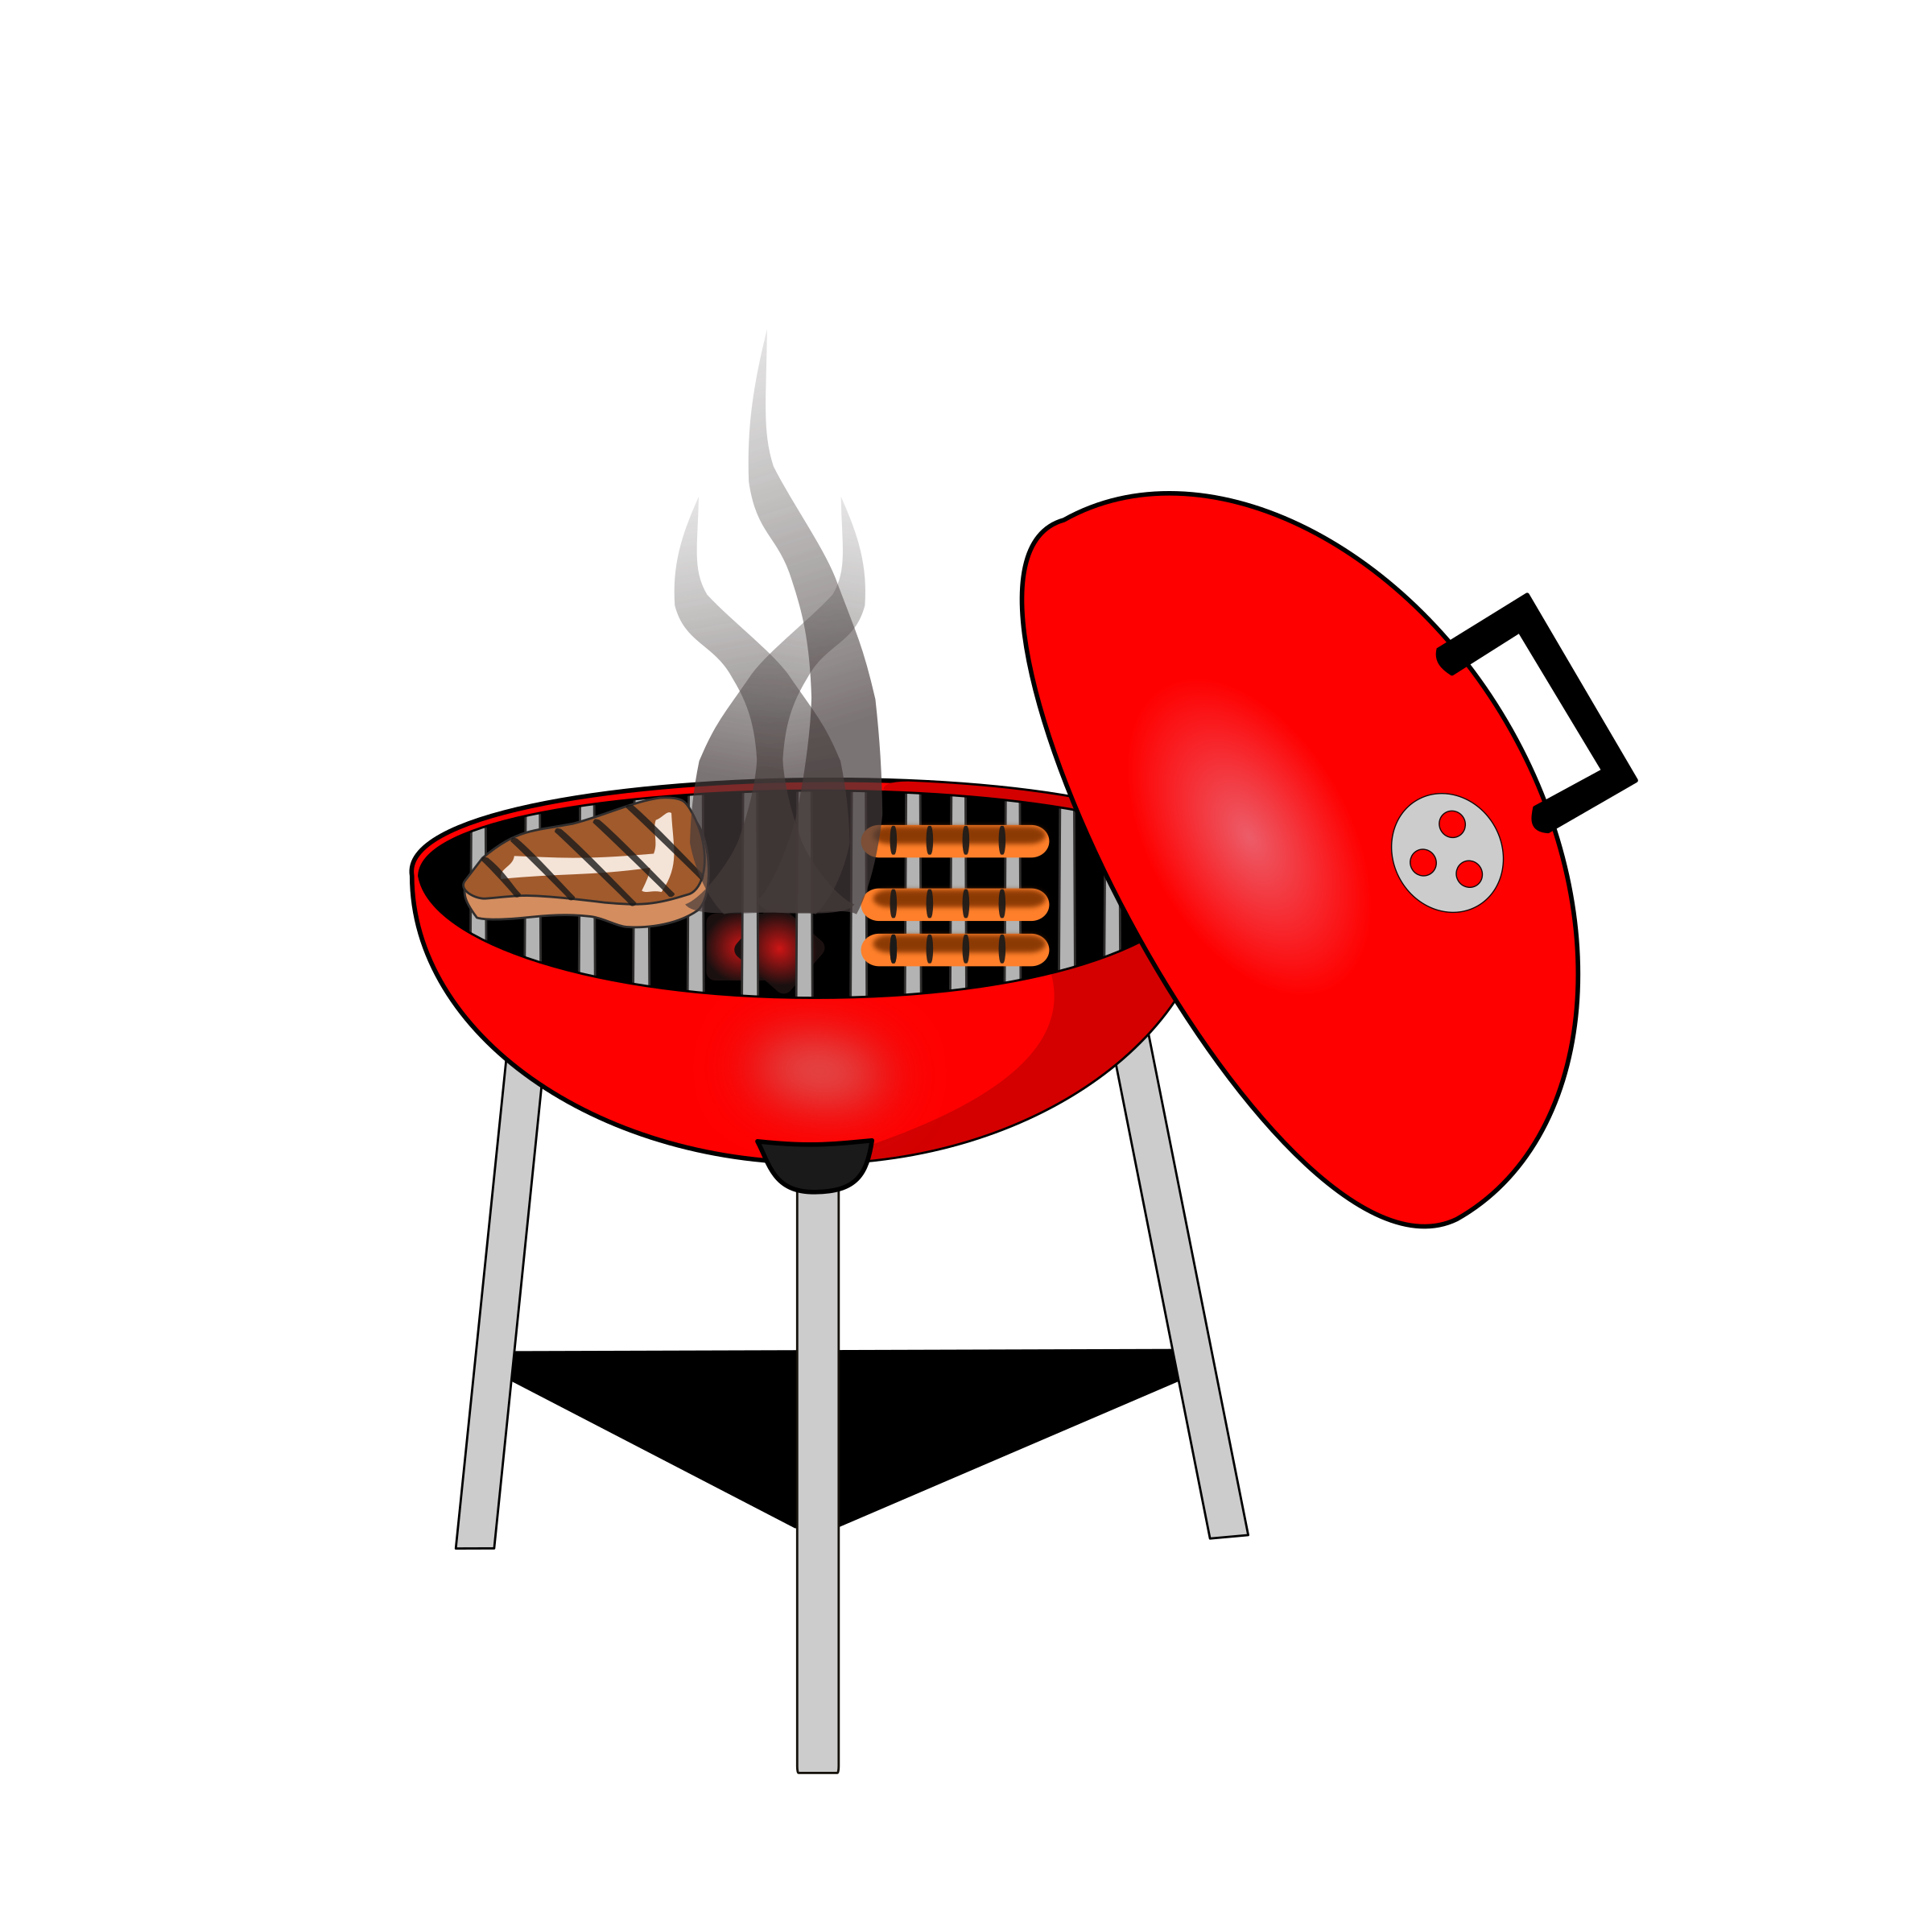 barbecue grill by DebraK